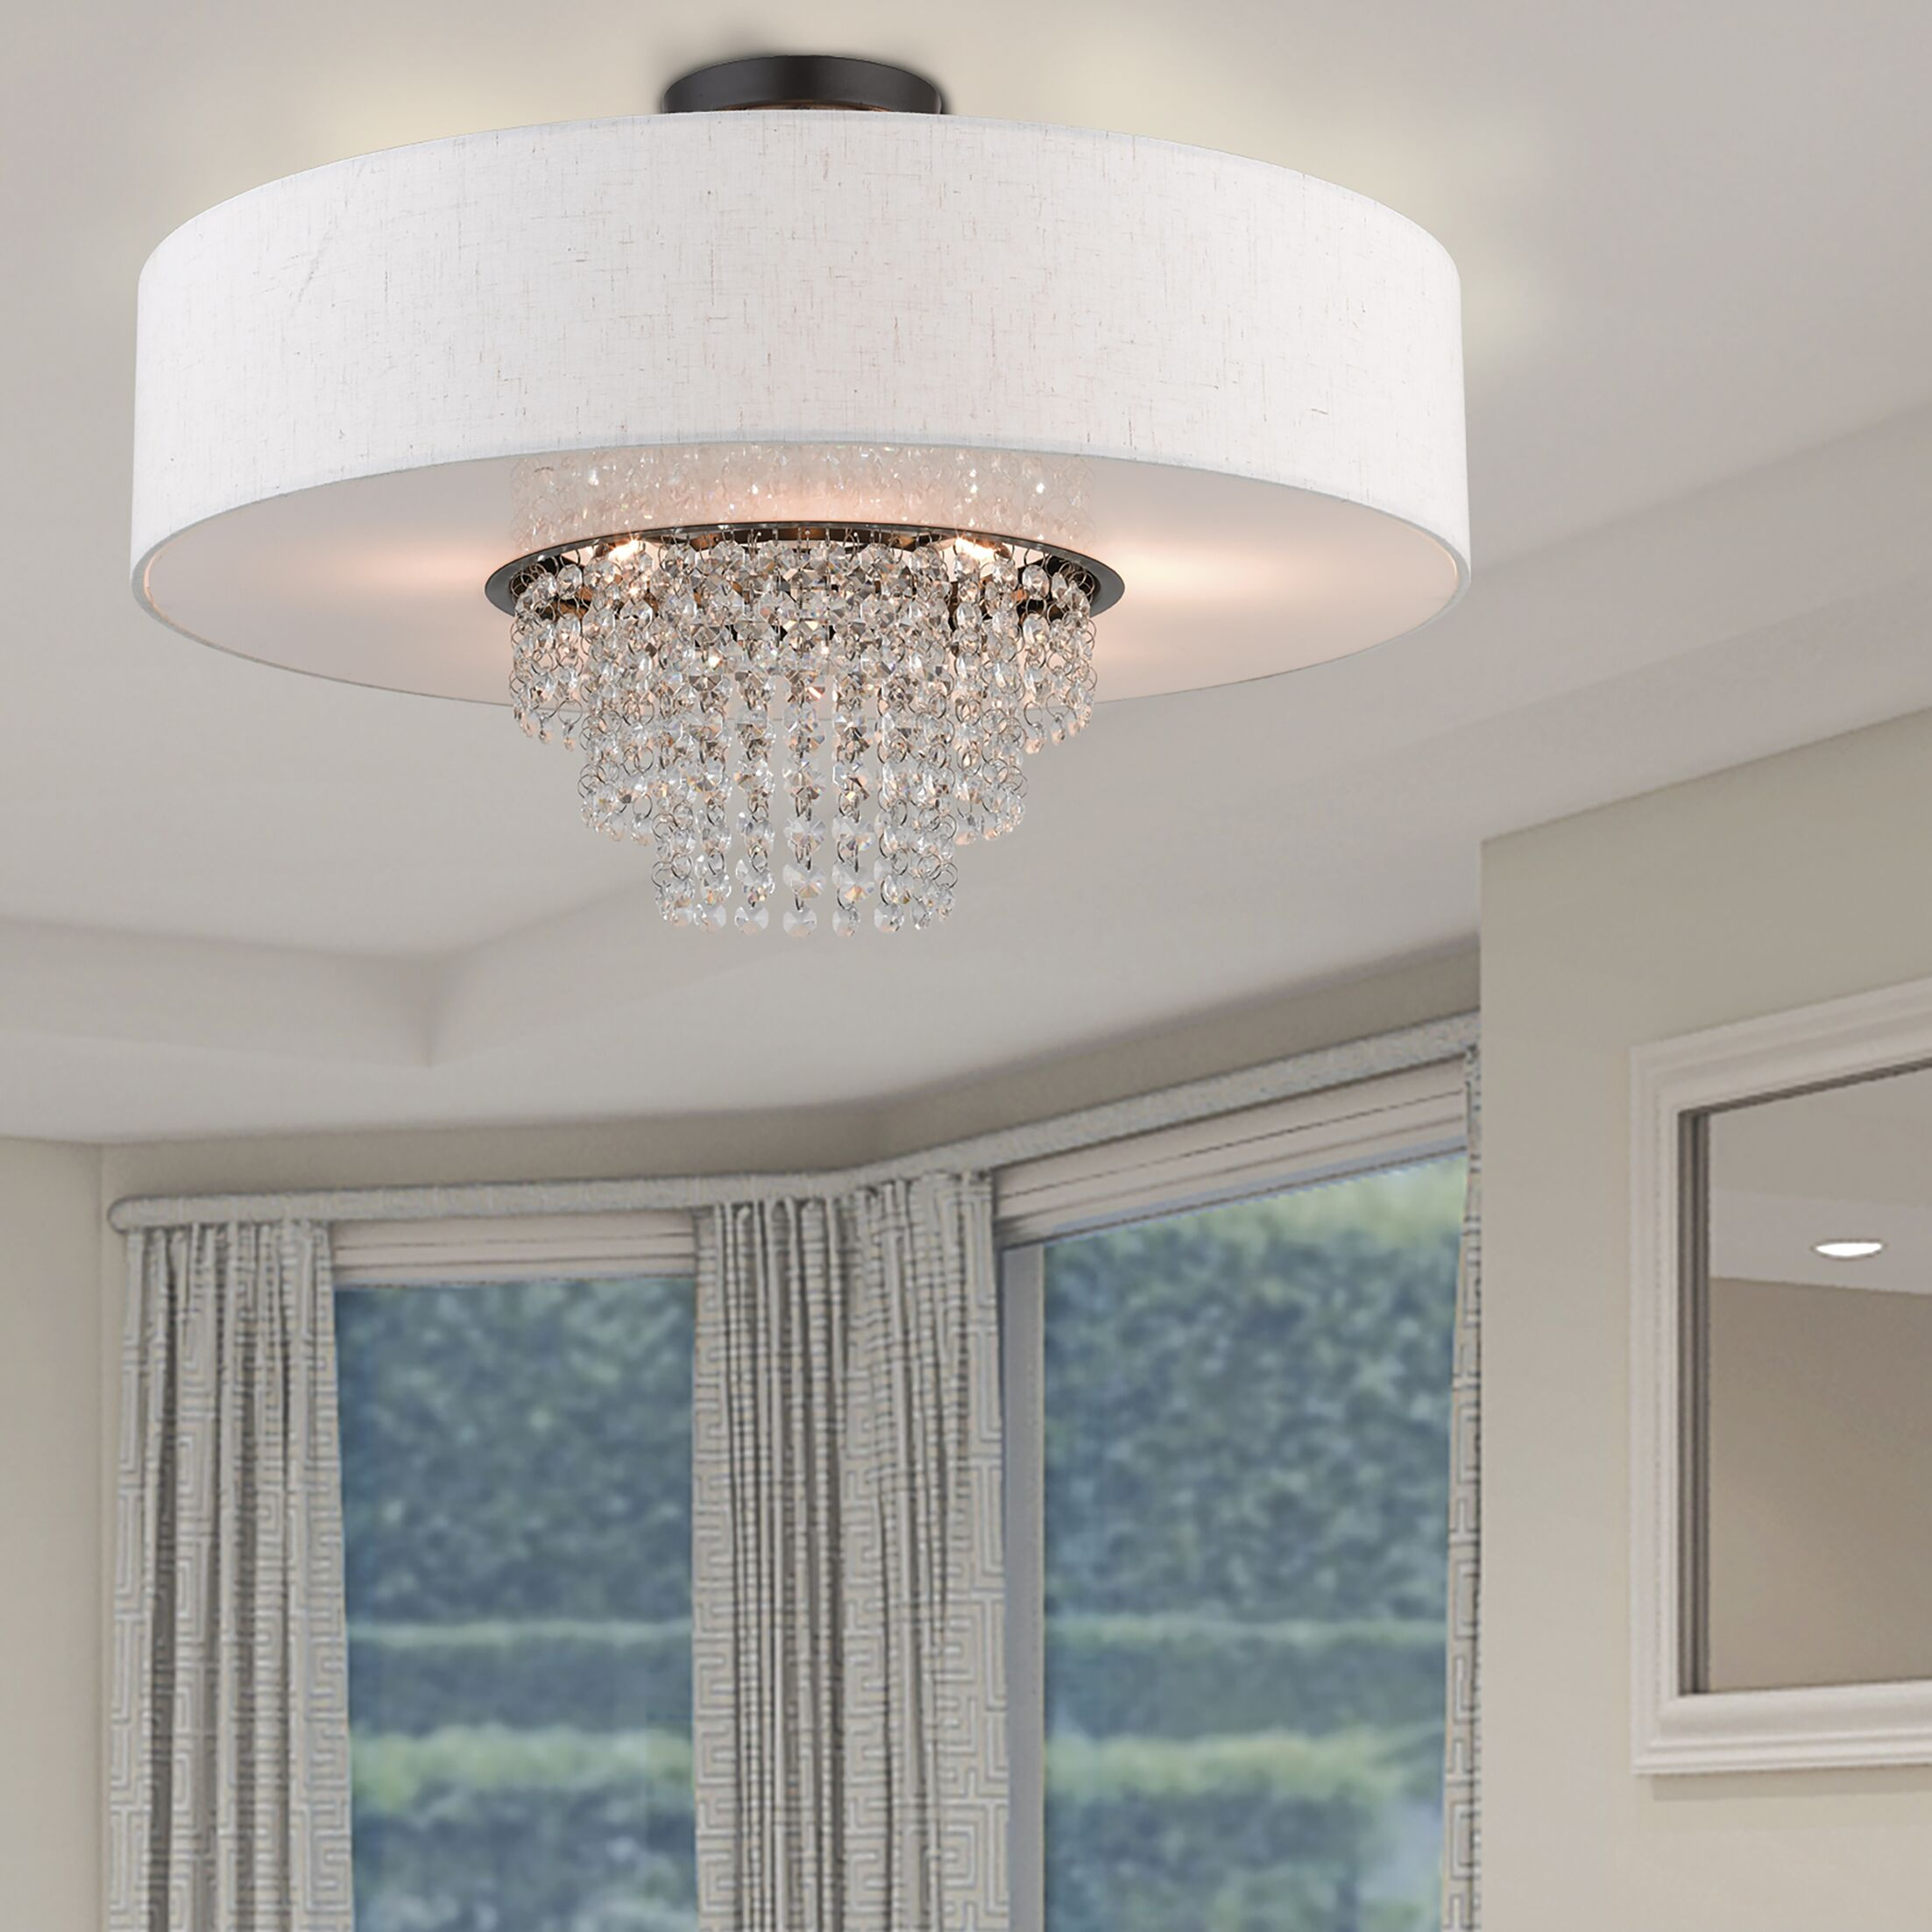 D'or Semi Flush Mount Size: 14.4